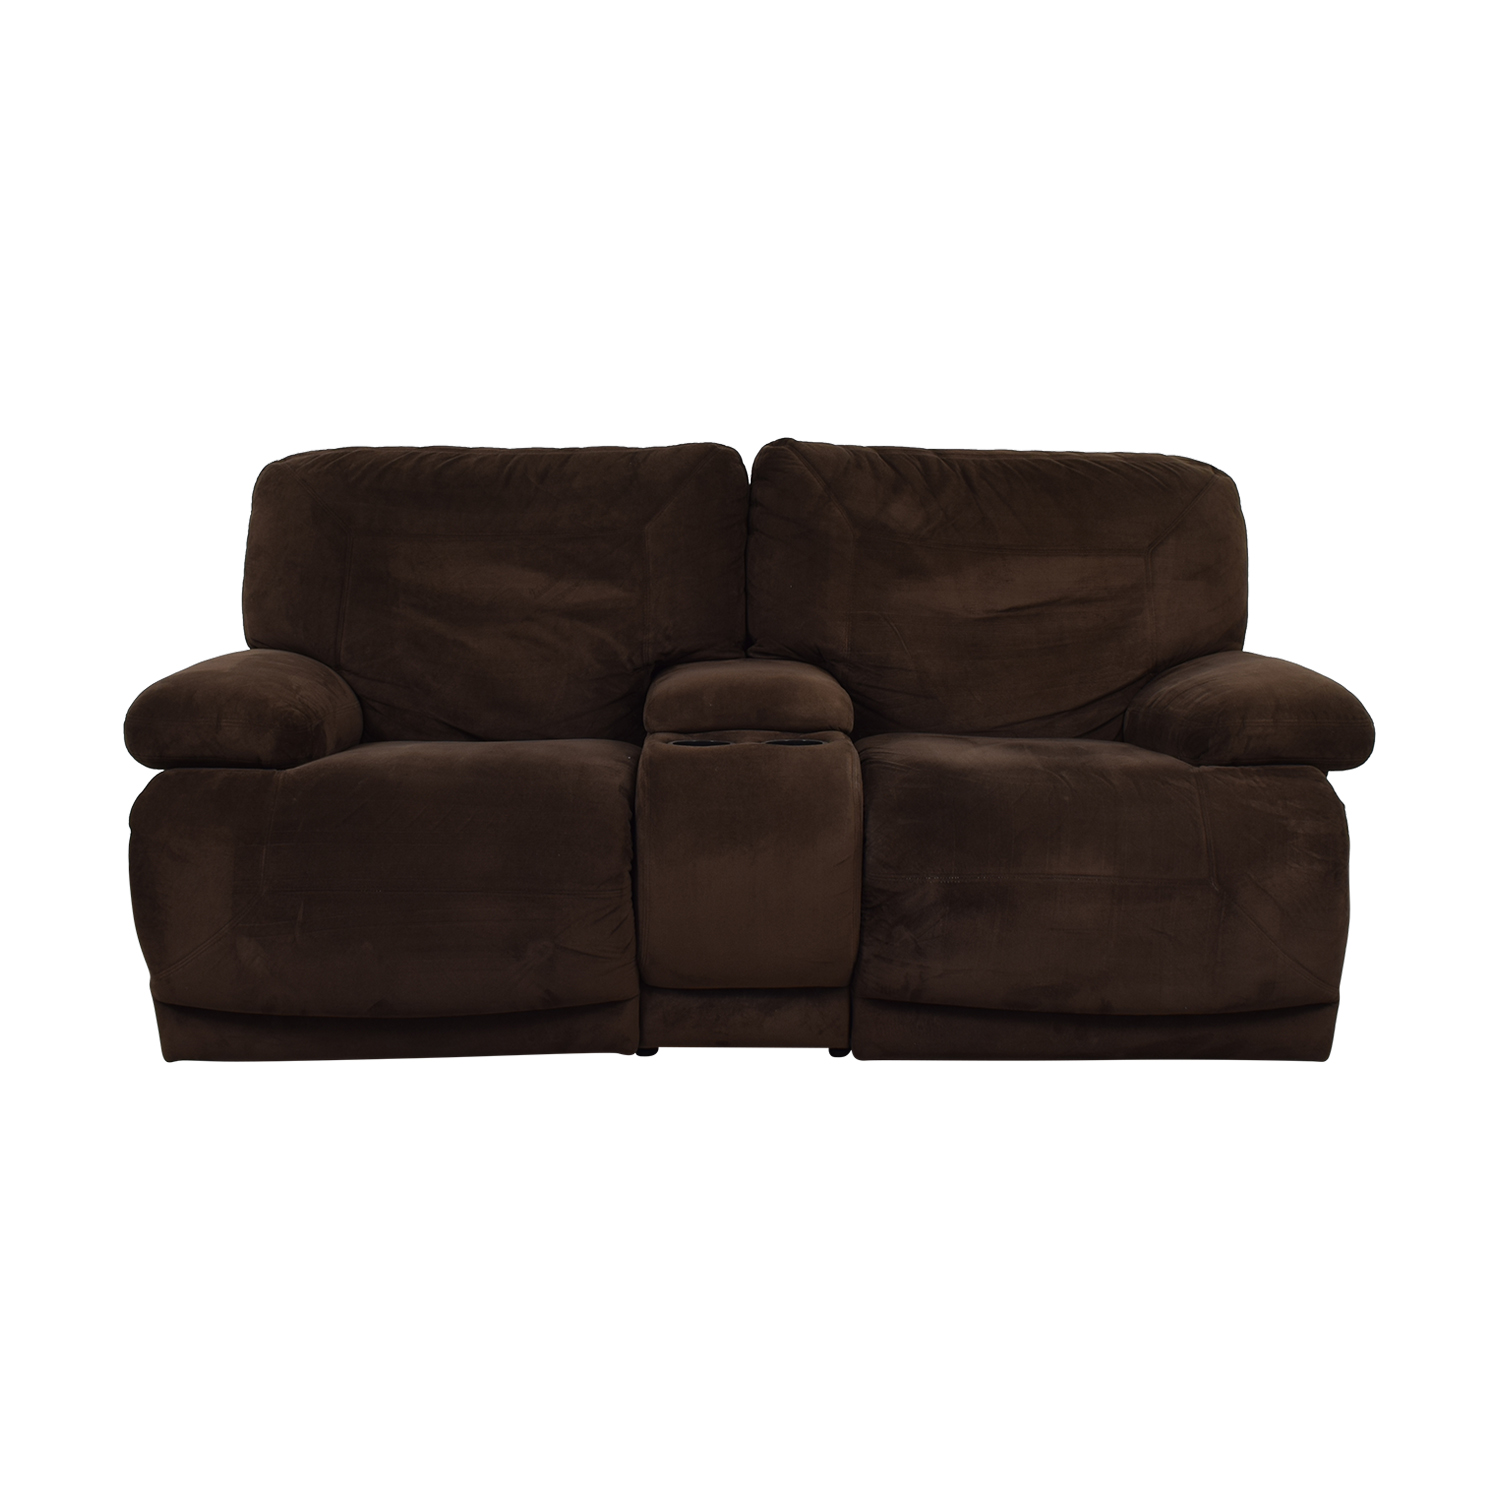 low priced 84901 227d4 73% OFF - Macy's Macy's Brown Reclining Loveseat / Sofas